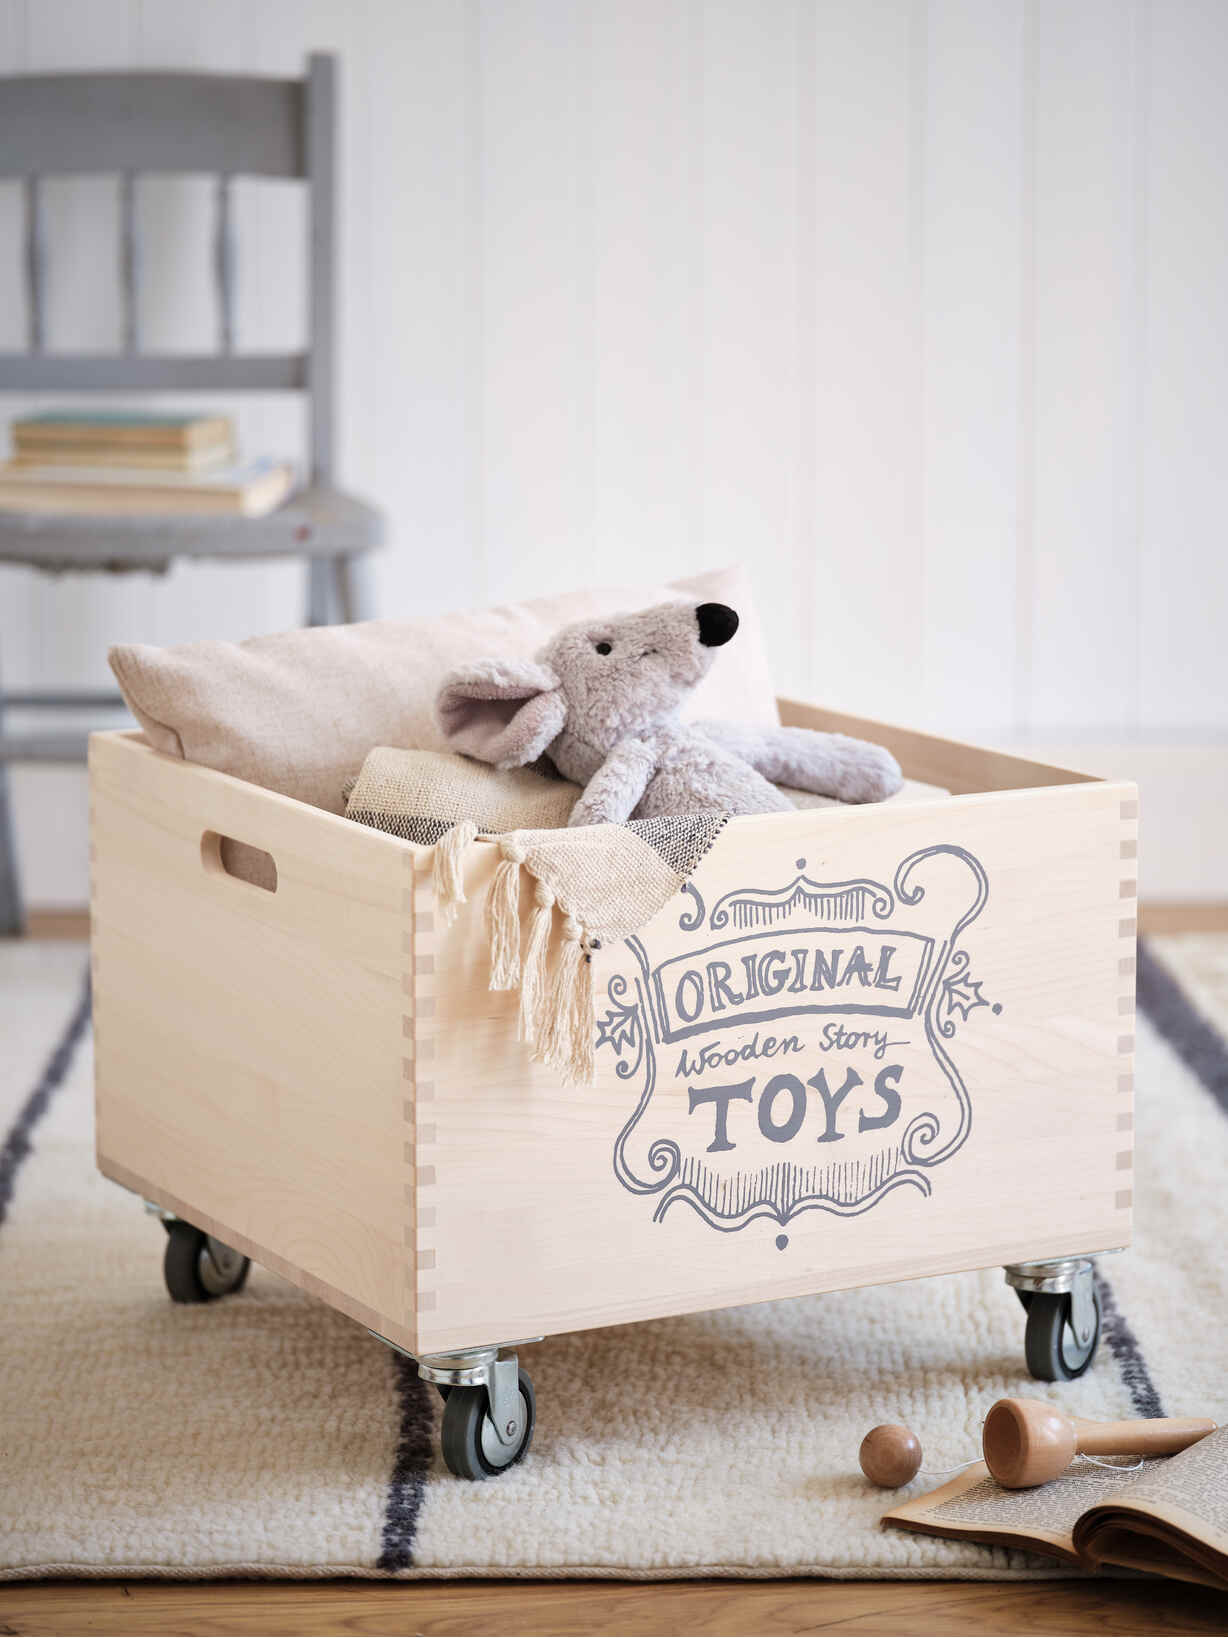 Nordic House Hand-Crafted Wooden Storage Crate